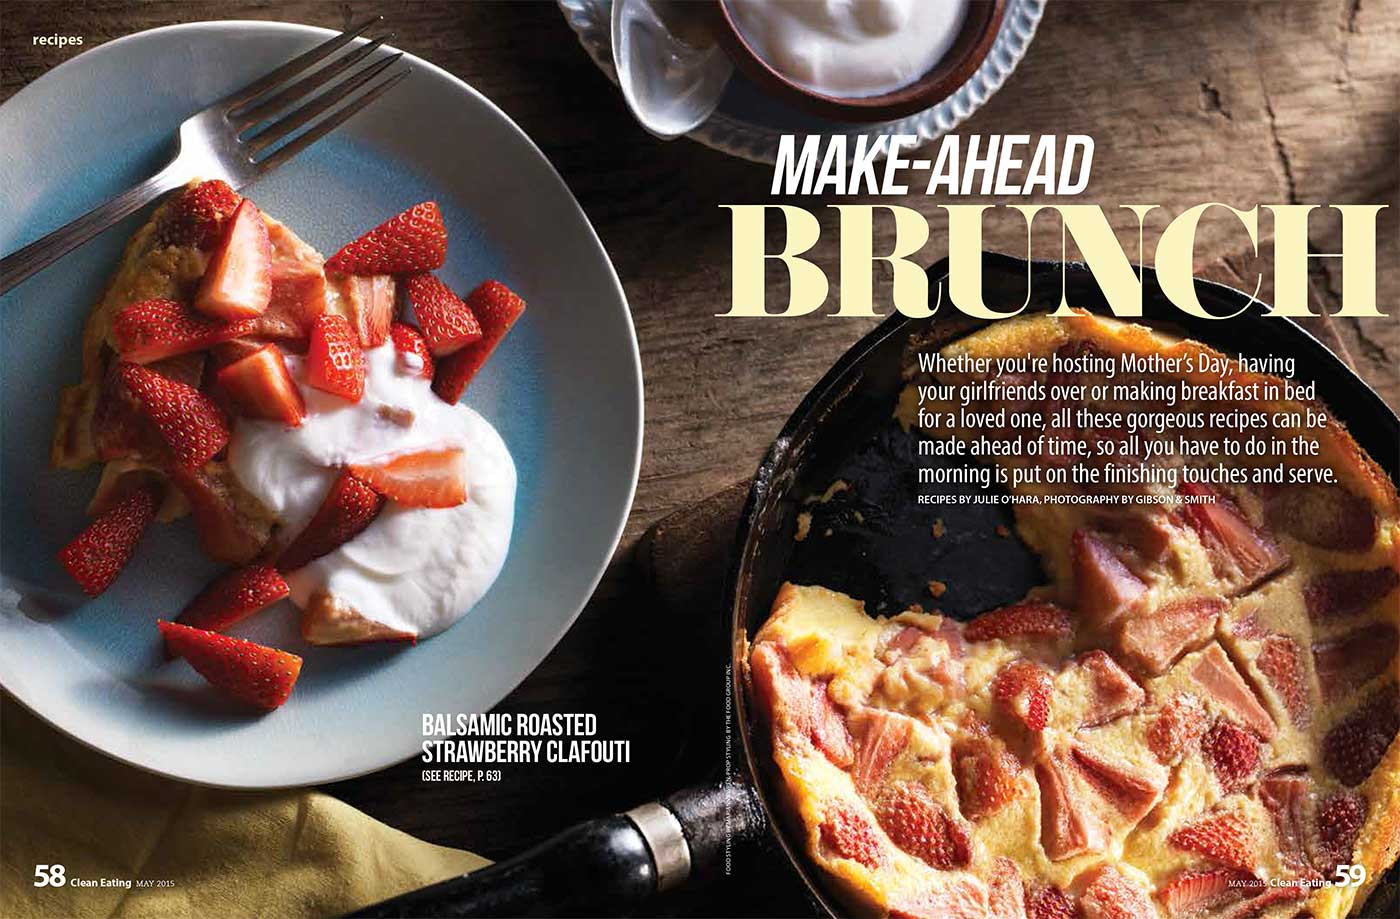 Make-Ahead Brunch strawberry clafoutis recipe food styling toronto stylist recipe development marianne wren clean eating magazine